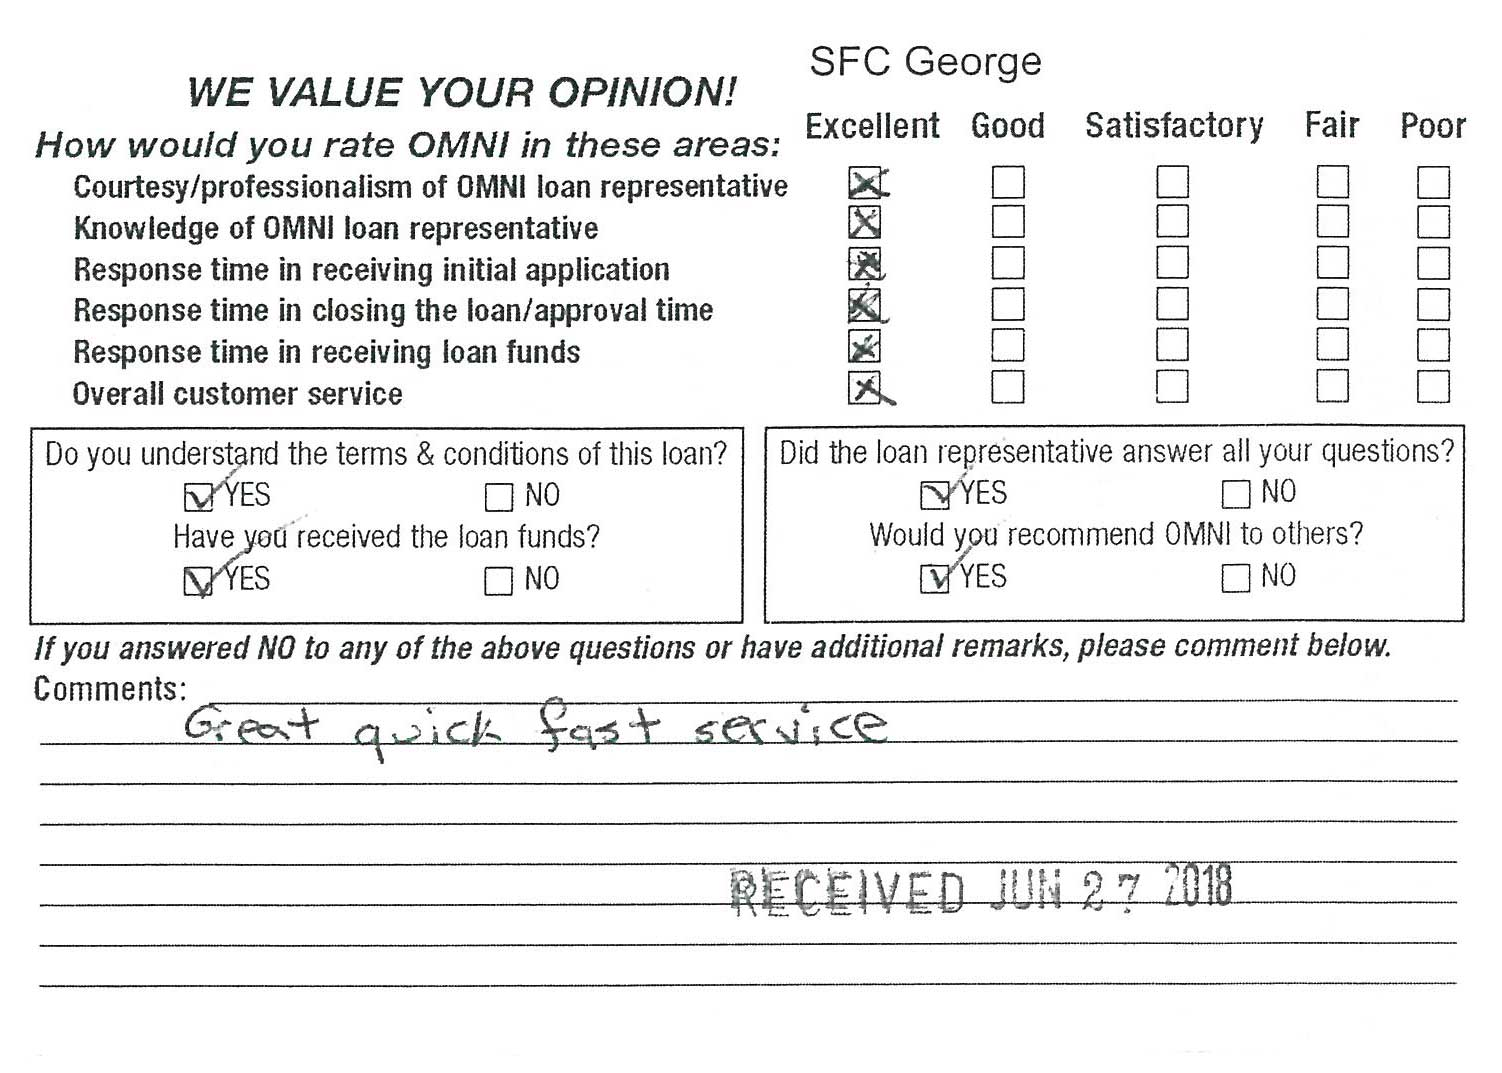 Comment card received for Omni office in Hinesville, GA on June 27, 2018